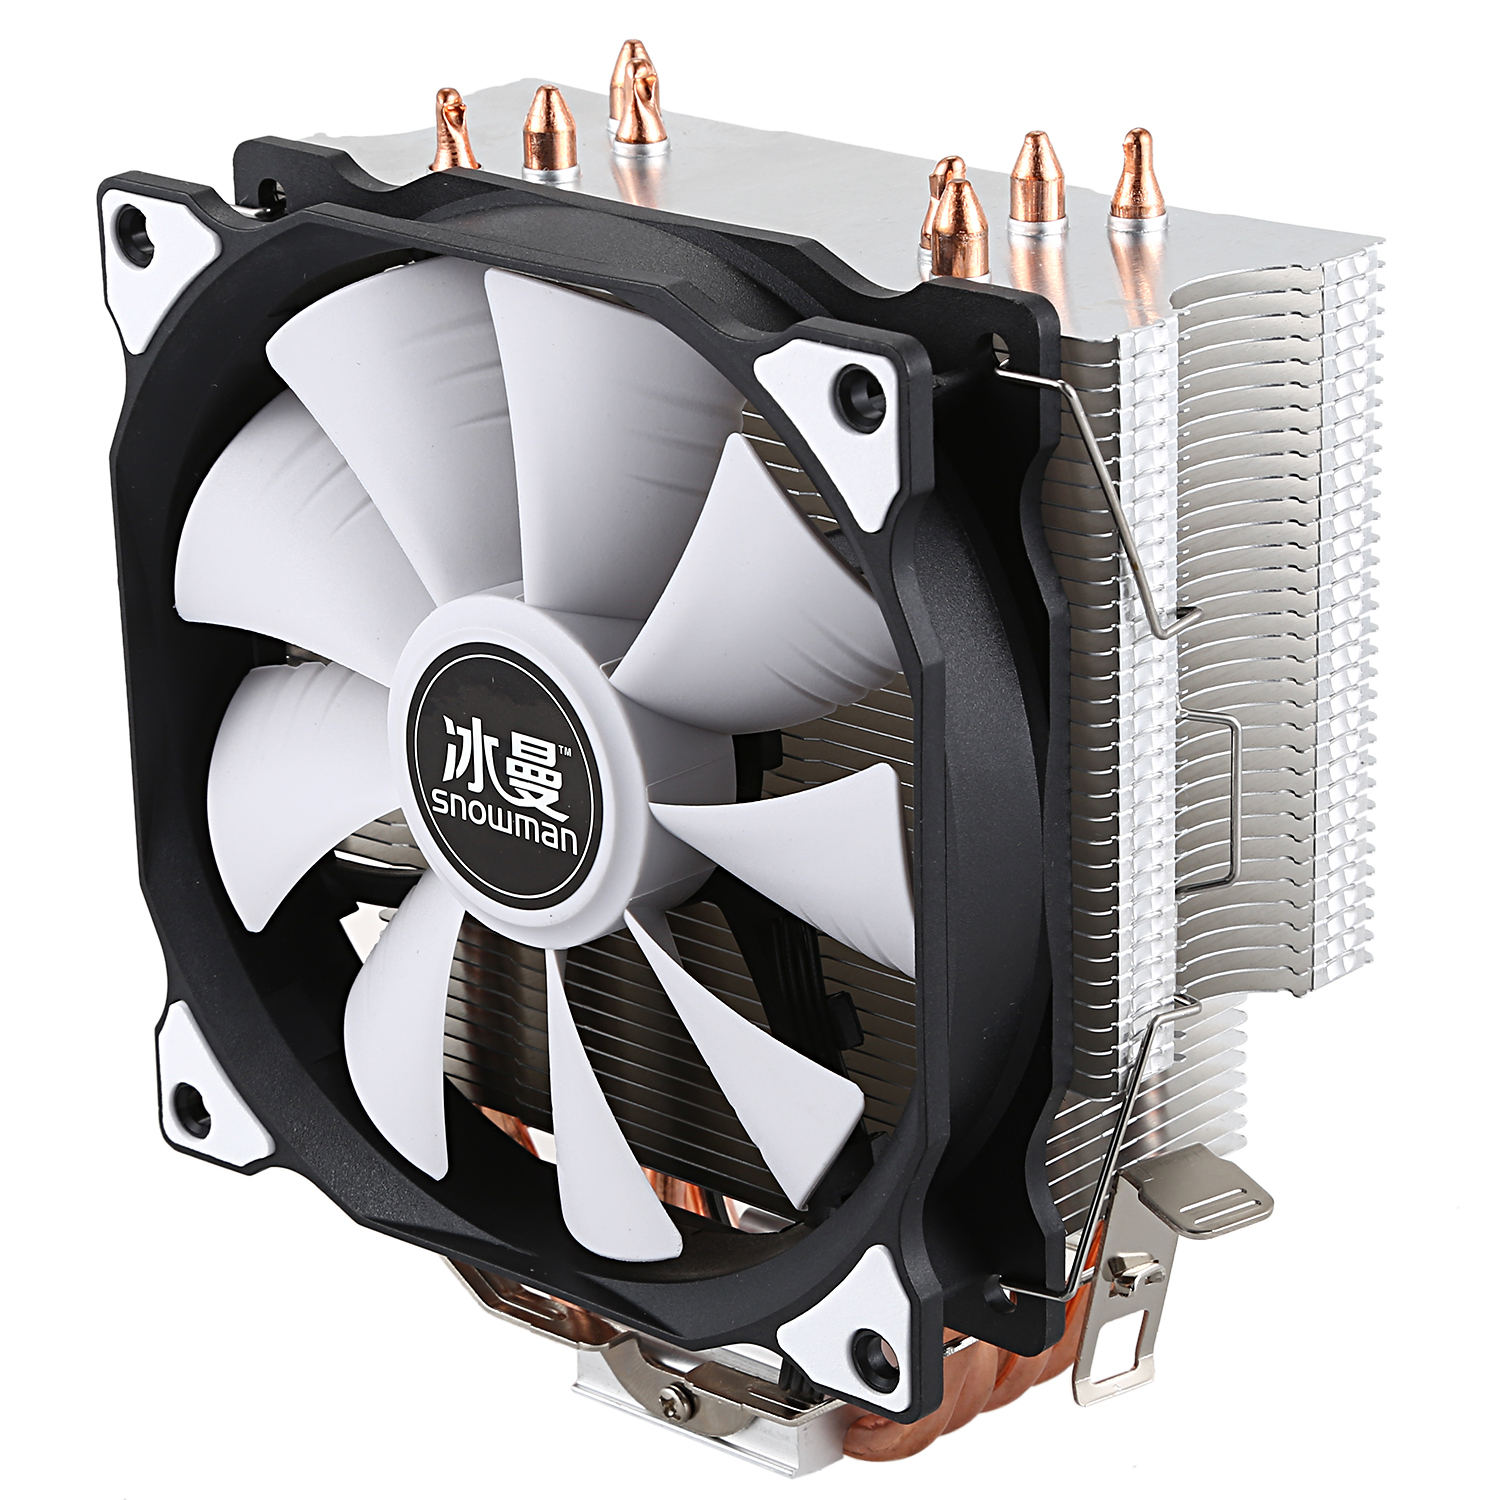 SNOWMAN CPU Cooler Master 4 Pure Copper Heat-pipes freeze Tower Cooling System CPU Cooling Fan with PWM Fans 3